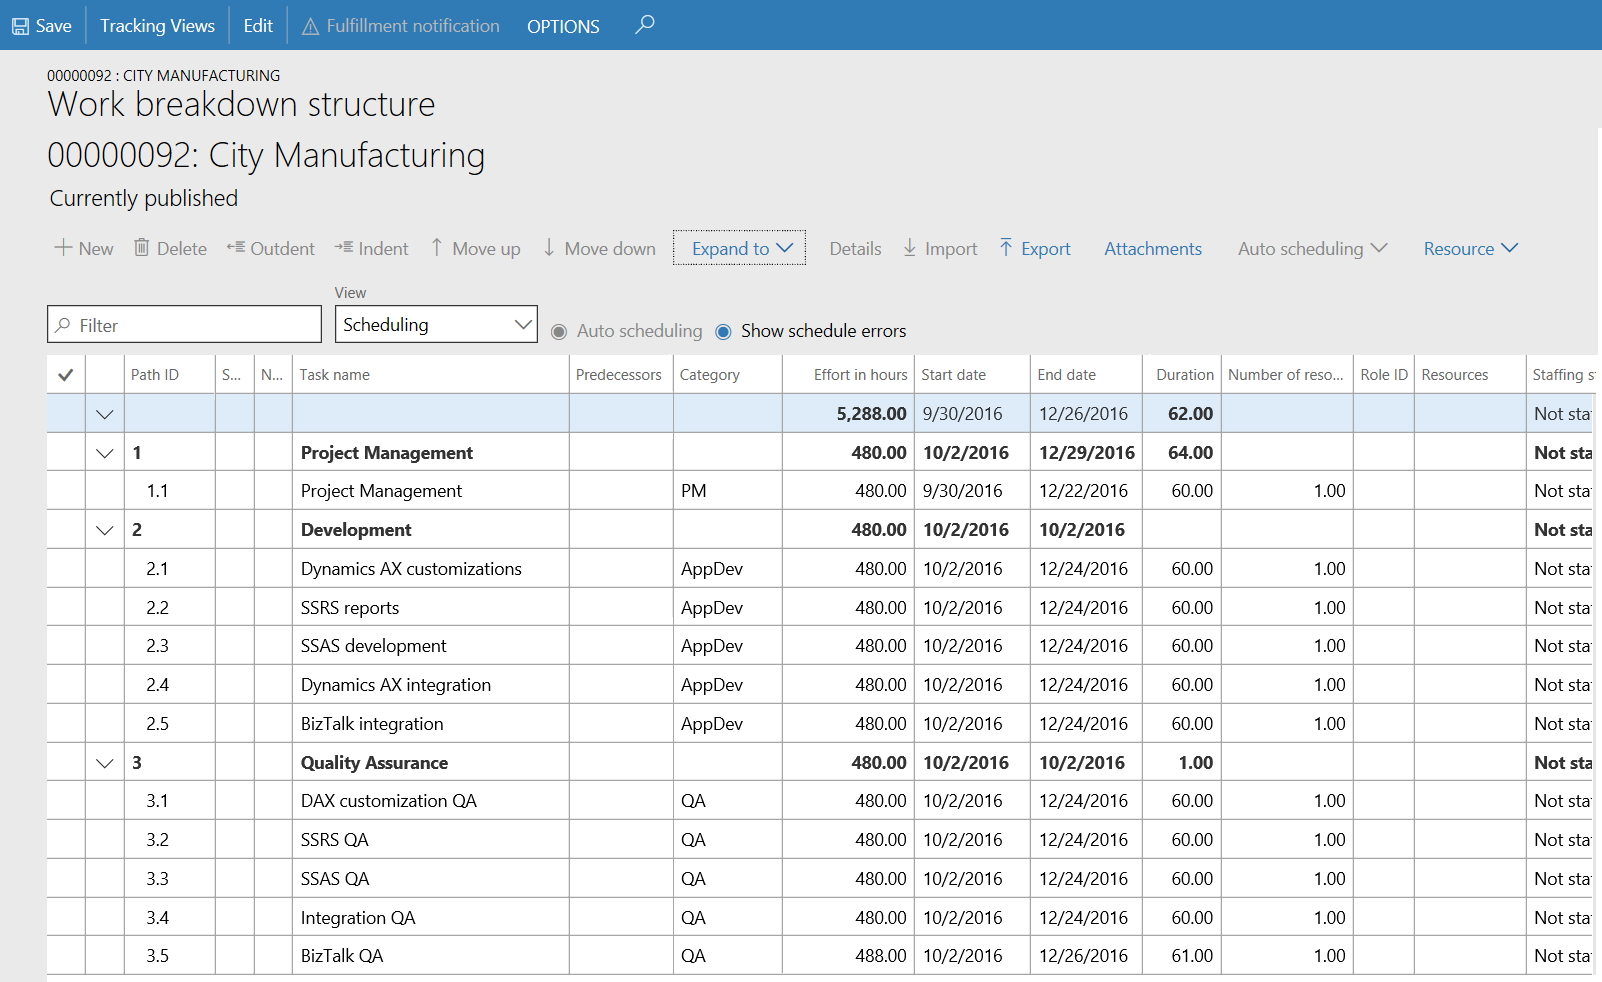 example of the work breakdown structure scheduling view